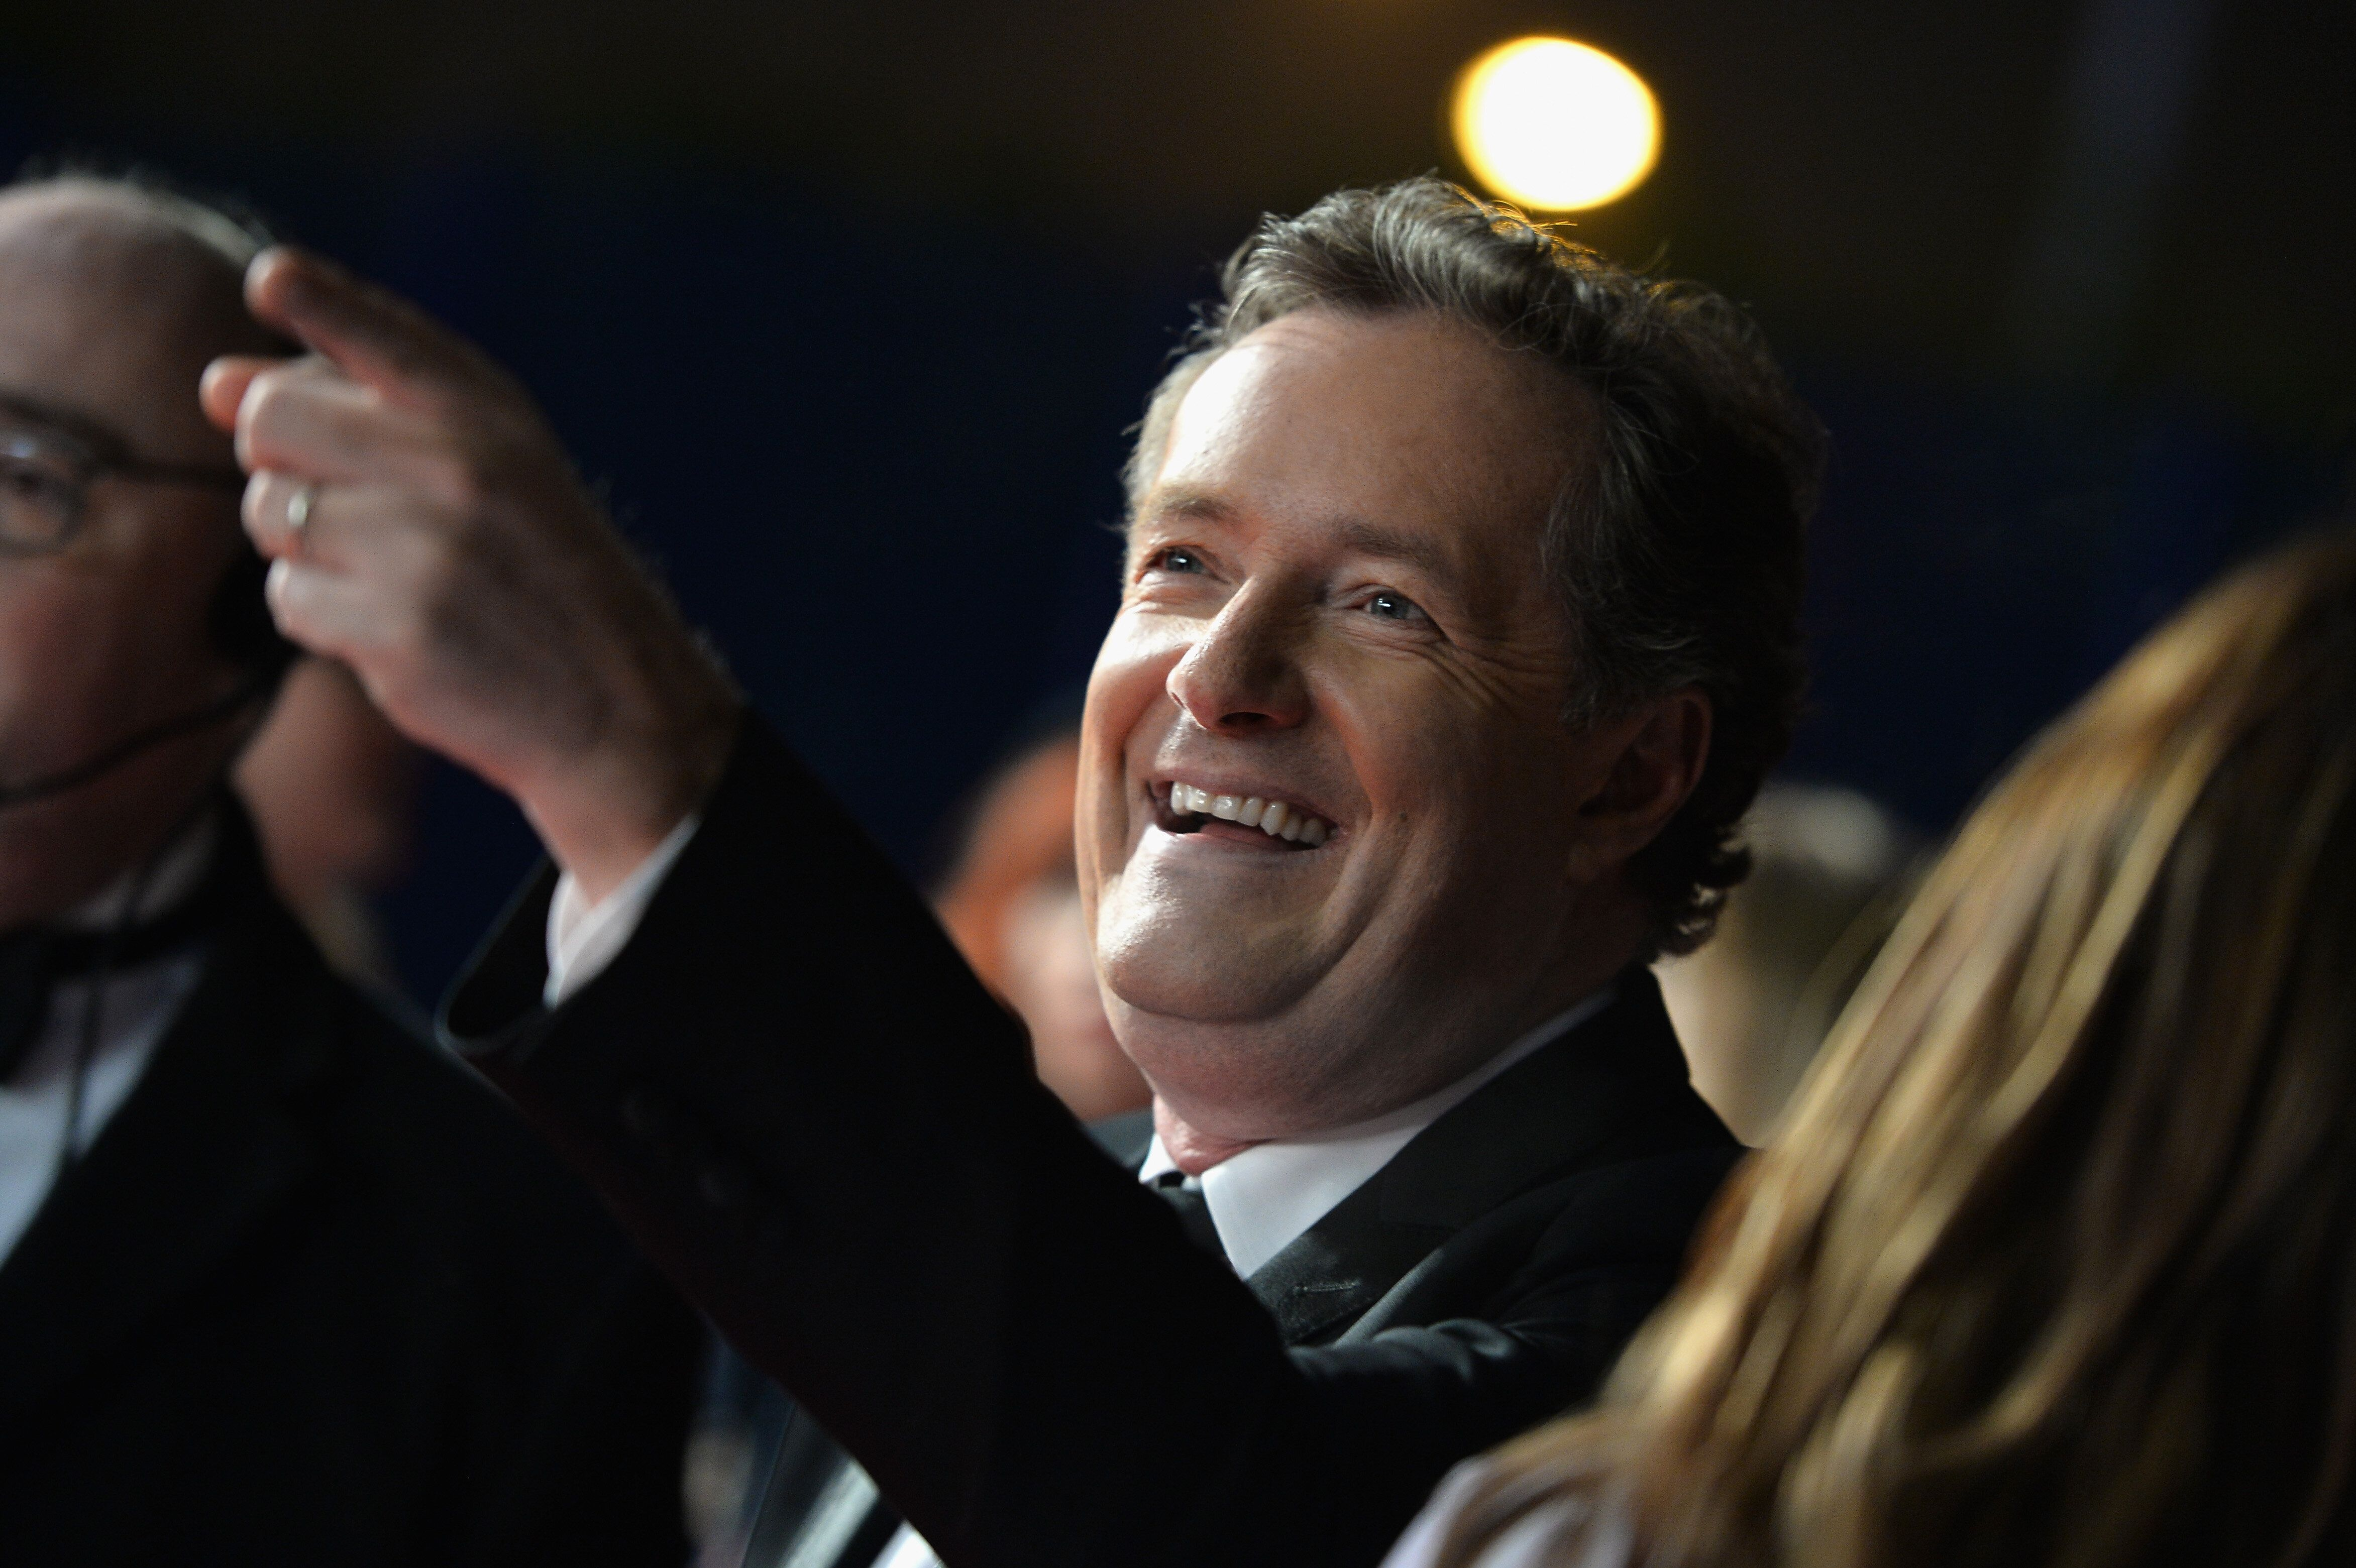 LONDON, ENGLAND - JANUARY 25:  Piers Morgan attends the National Television Awards on January 25, 2017 in London, United Kingdom.  (Photo by Jeff Spicer/Getty Images)